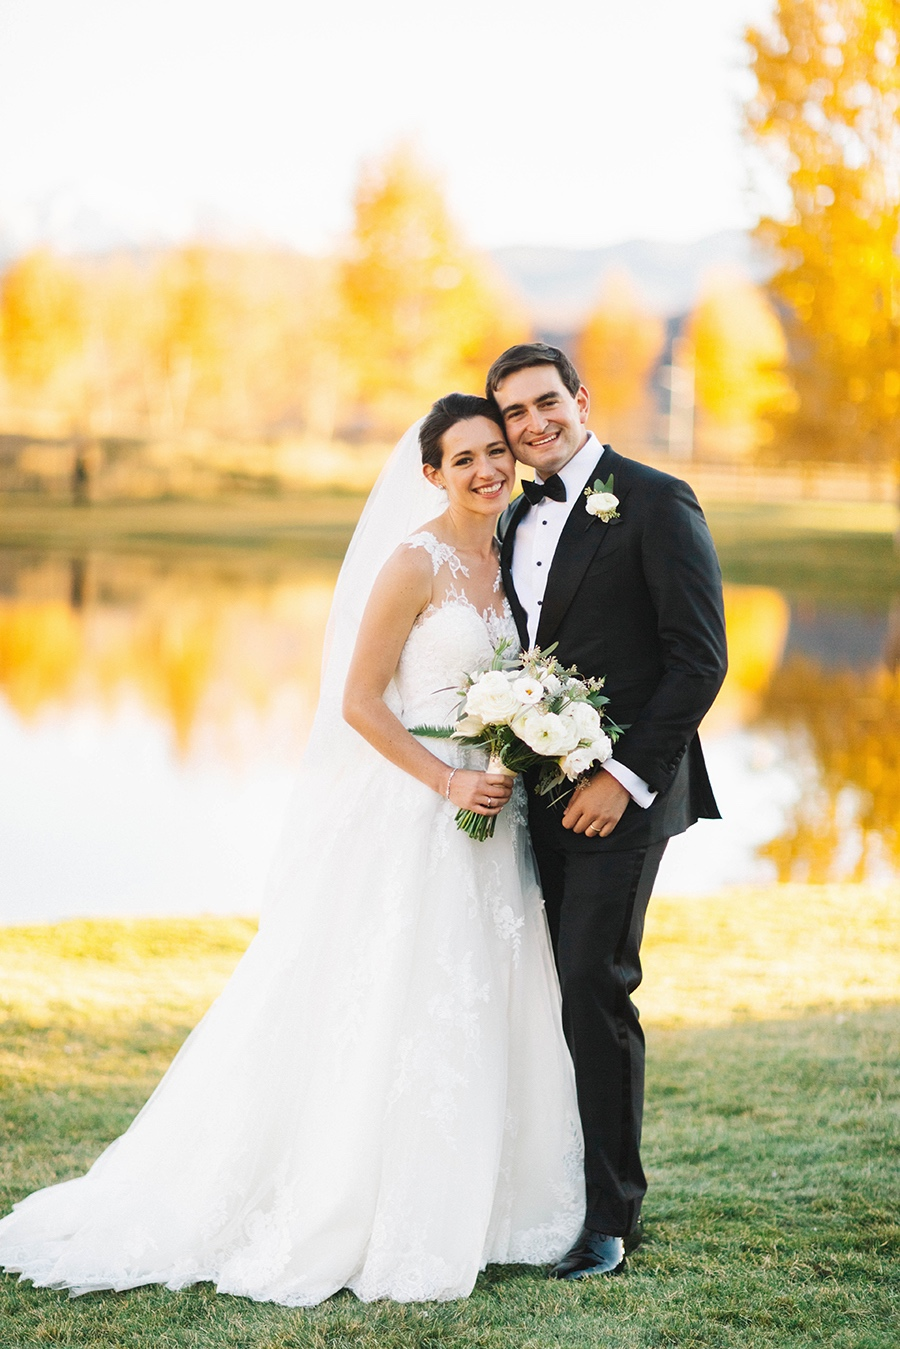 Bride & Groom at Aspen Ranch Destination Wedding | Cat Mayer